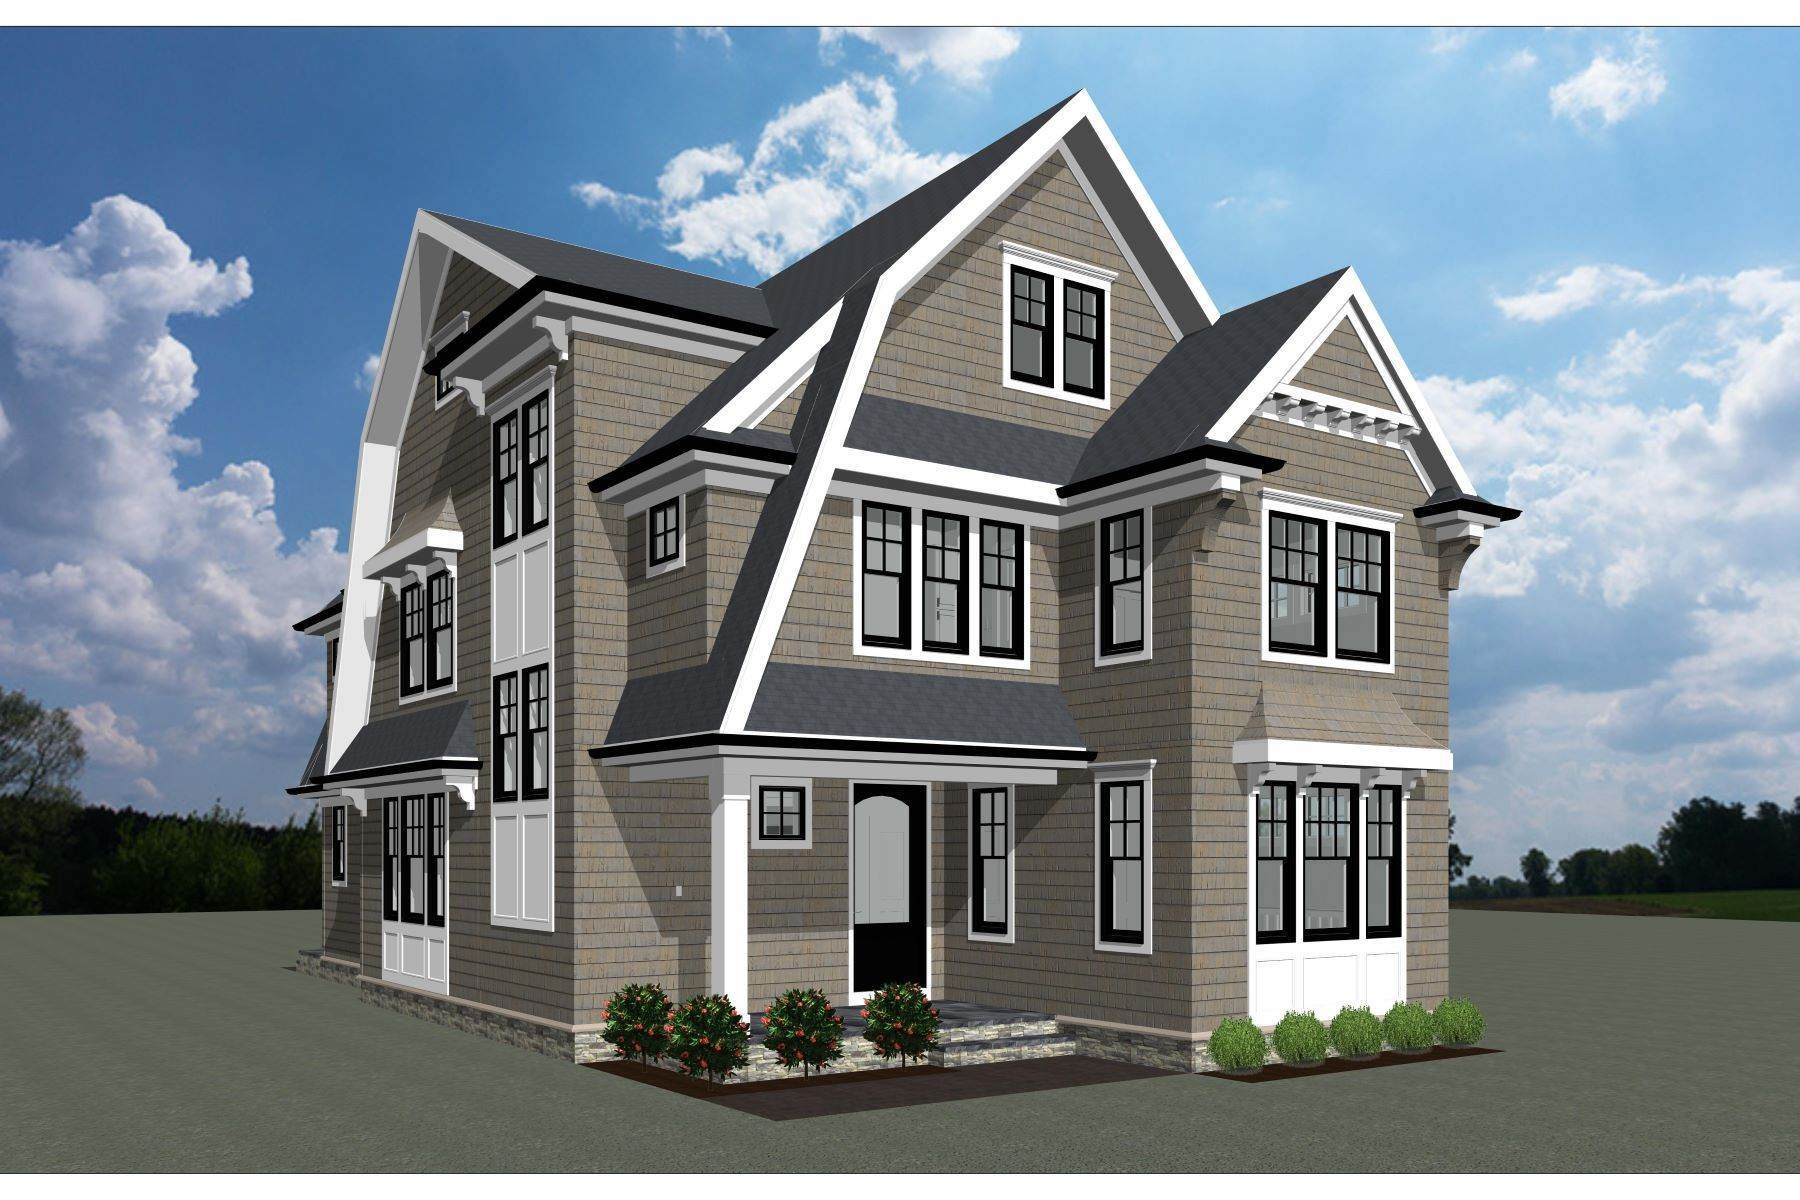 Single Family Homes for Sale at New Construction in Sea Girt 316 Trenton Boulevard Sea Girt, New Jersey 08750 United States